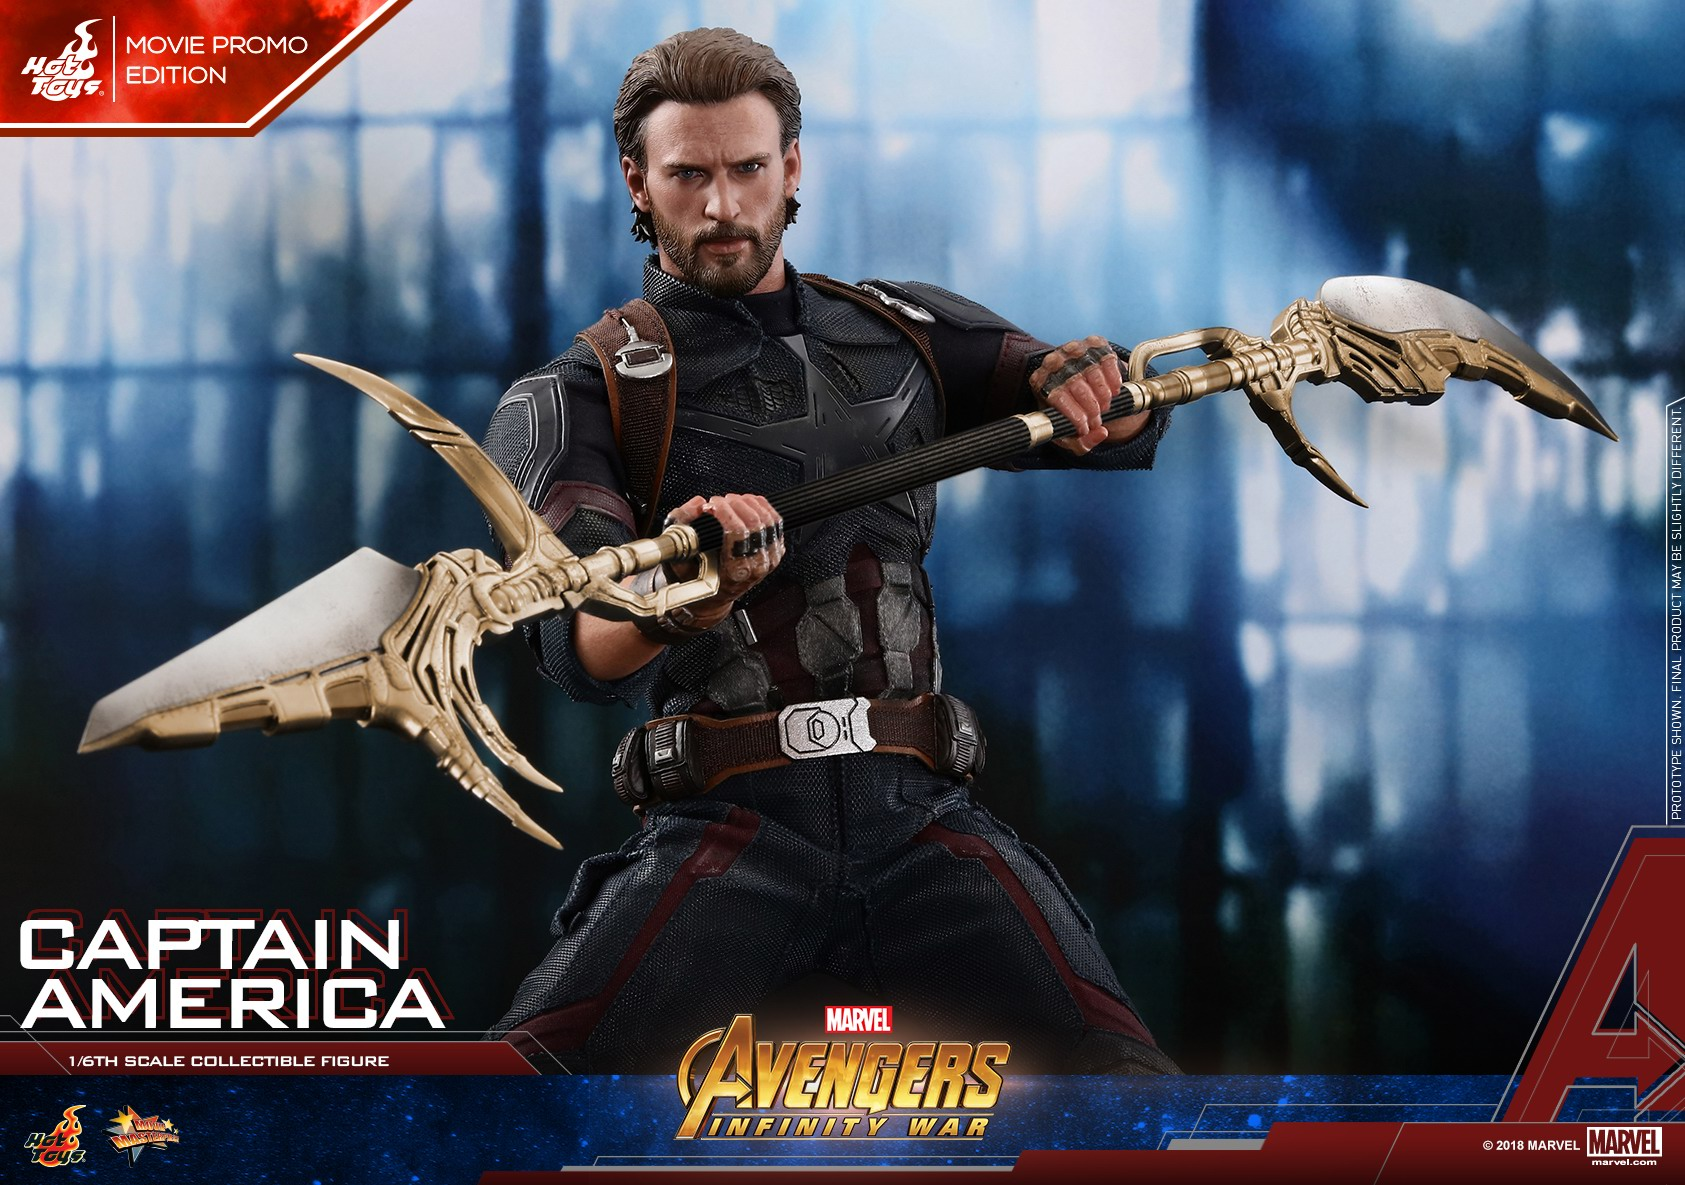 Hot-Toys-AIW-Captain-America-collectible-figure-Movie-Promo_Mystery-Weapon-PR01.jpg